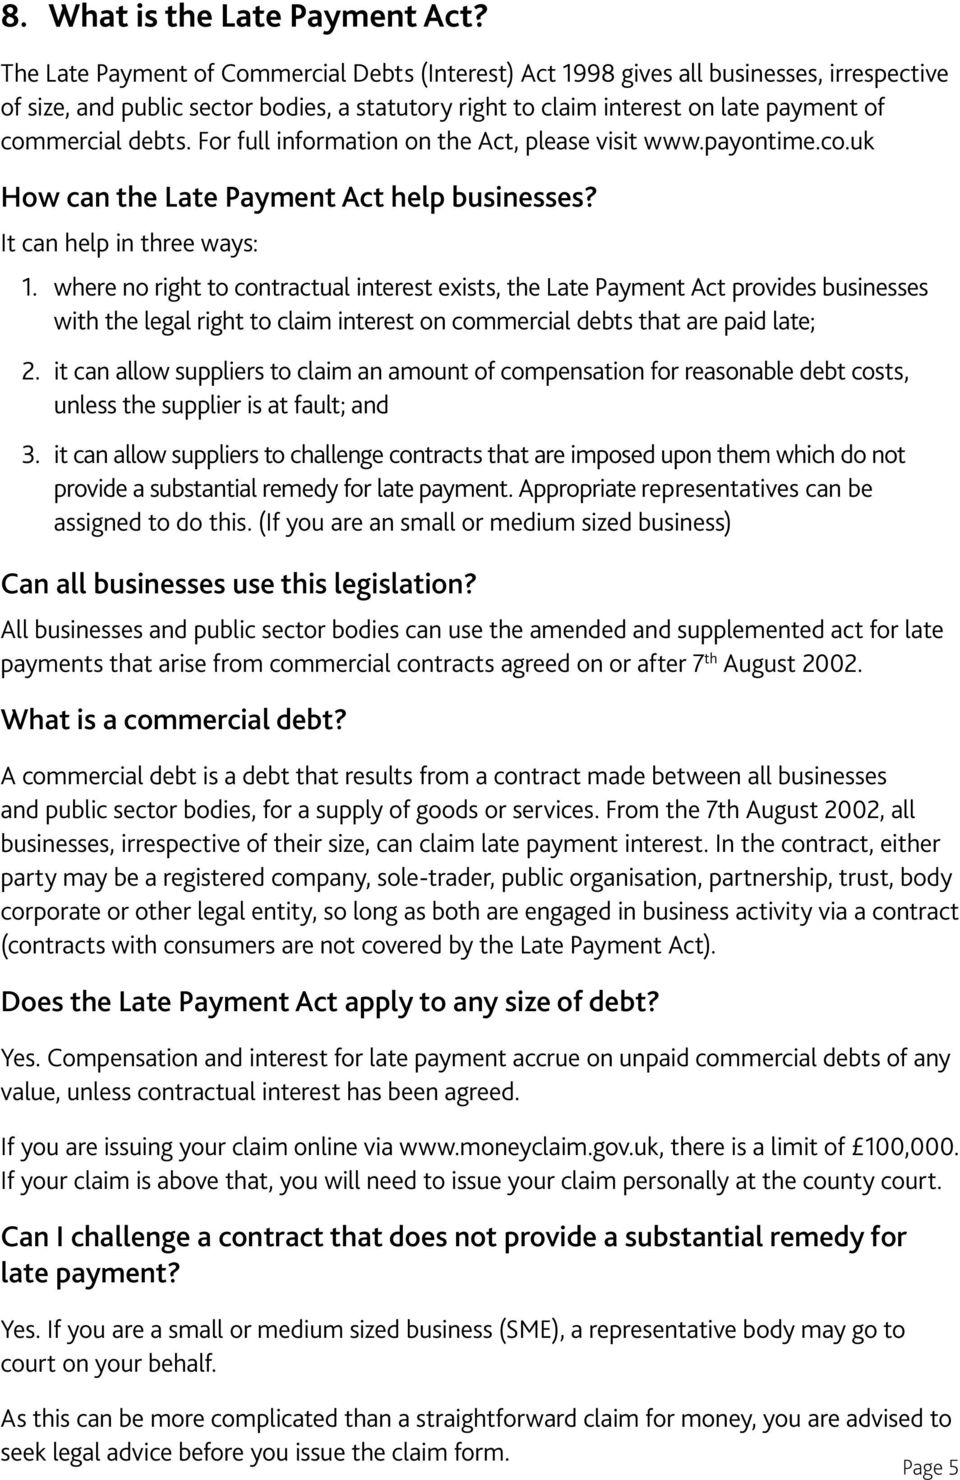 For full information on the Act, please visit www.payontime.co.uk How can the Late Payment Act help businesses? It can help in three ways: 1.